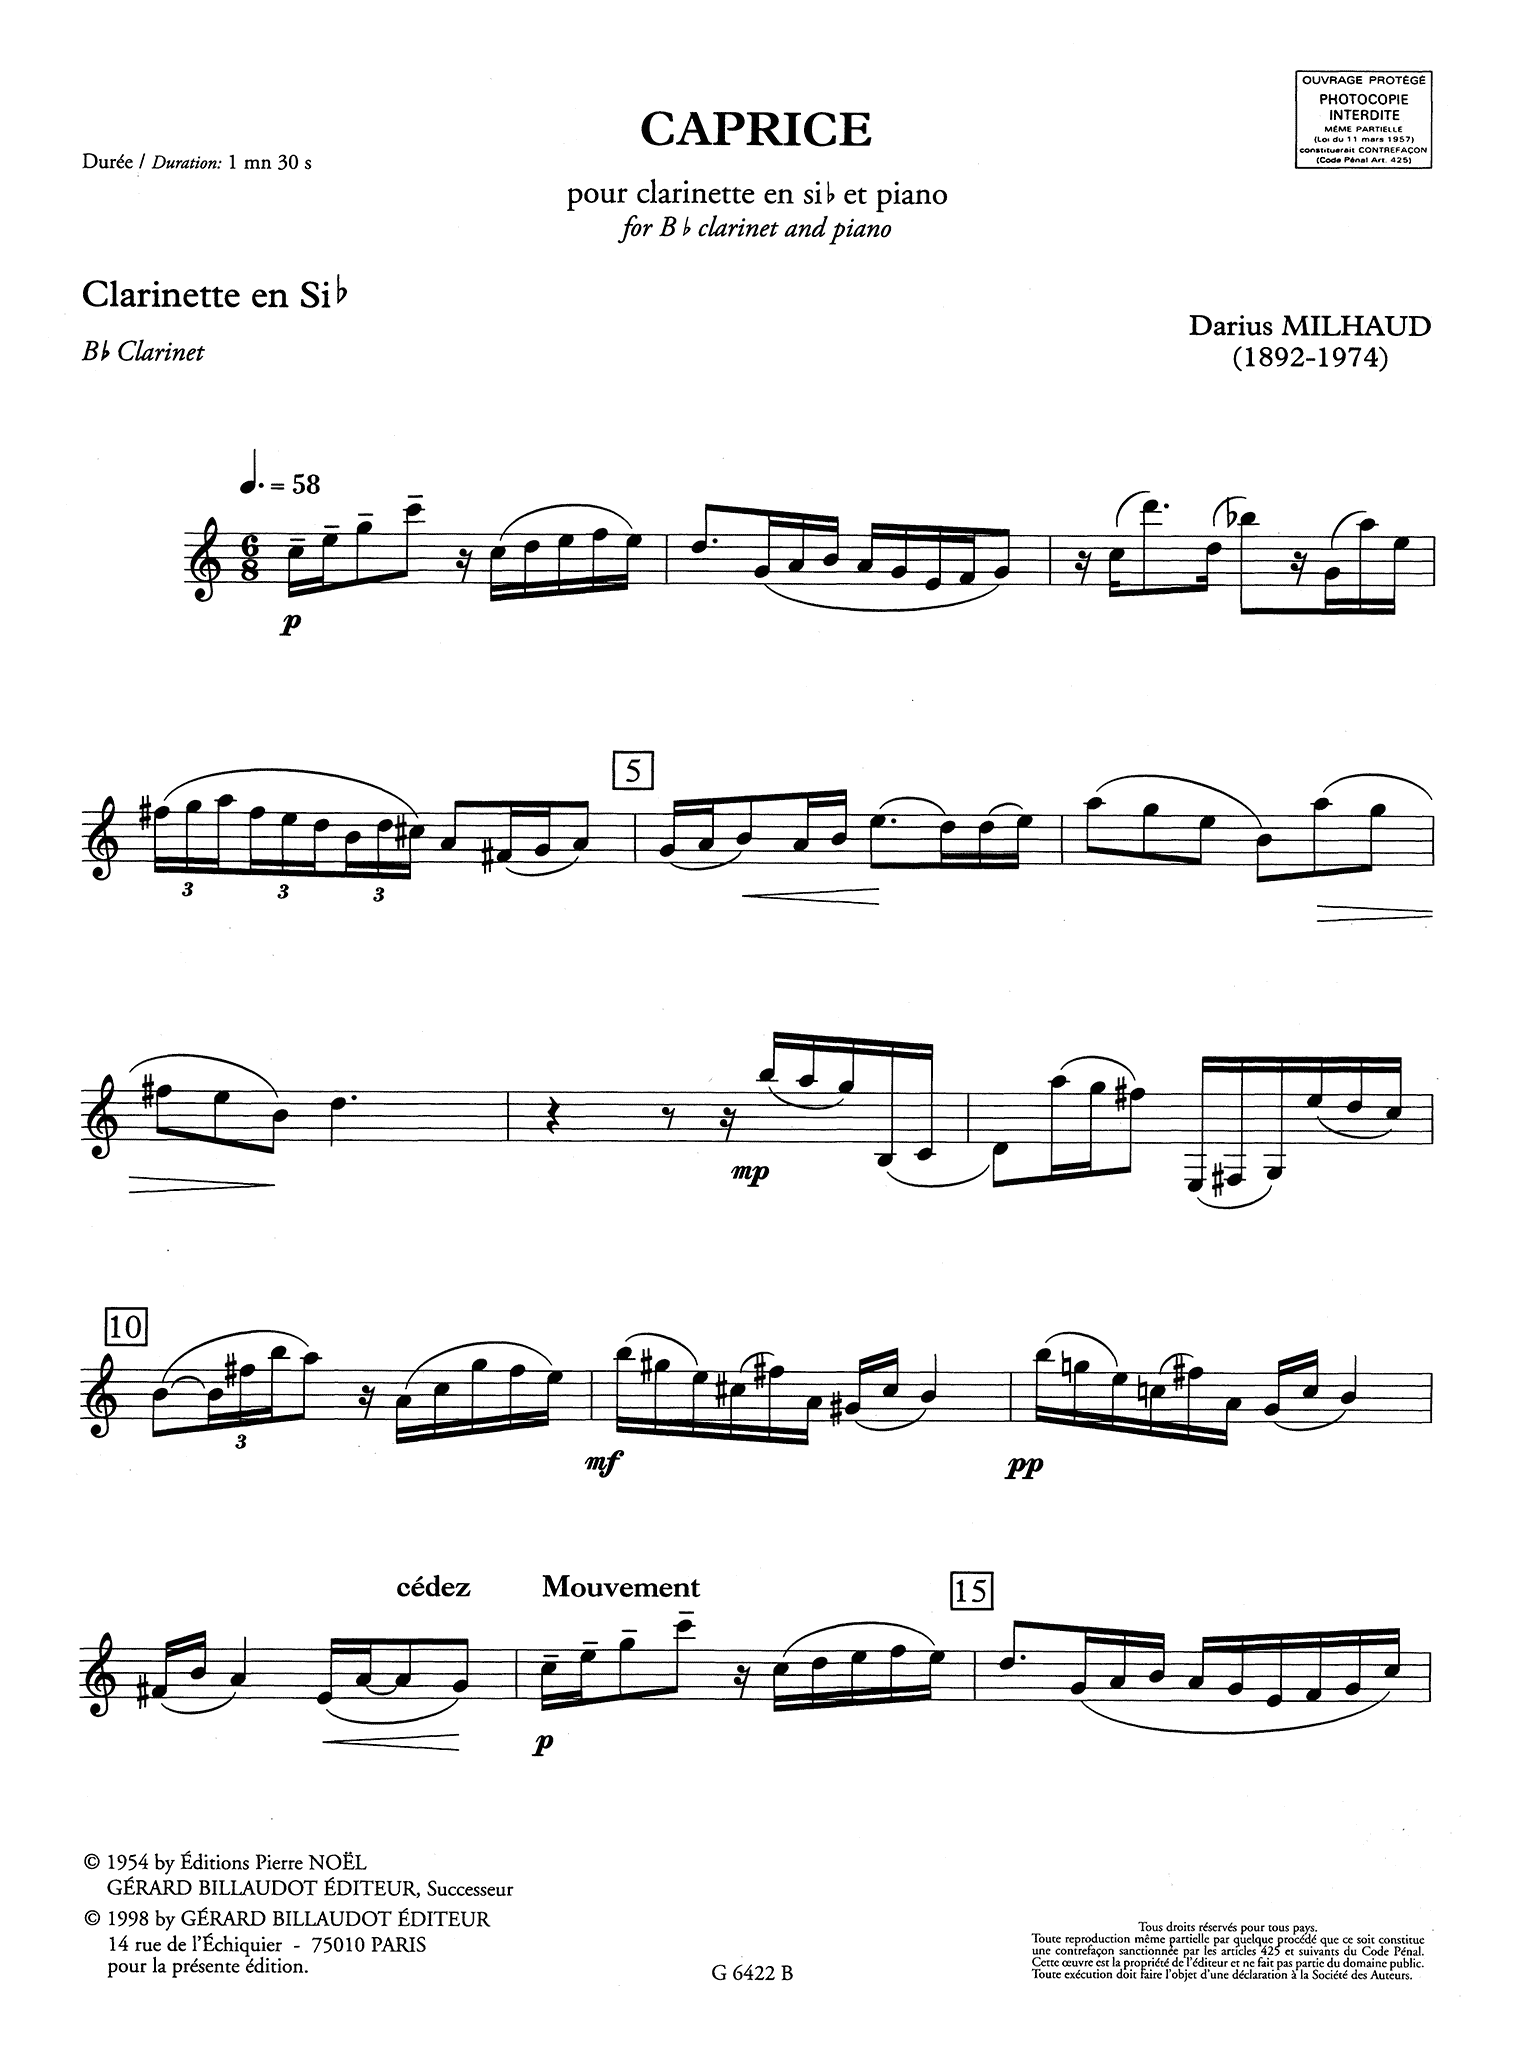 Milhaud Caprice, Op. 335 Clarinet part